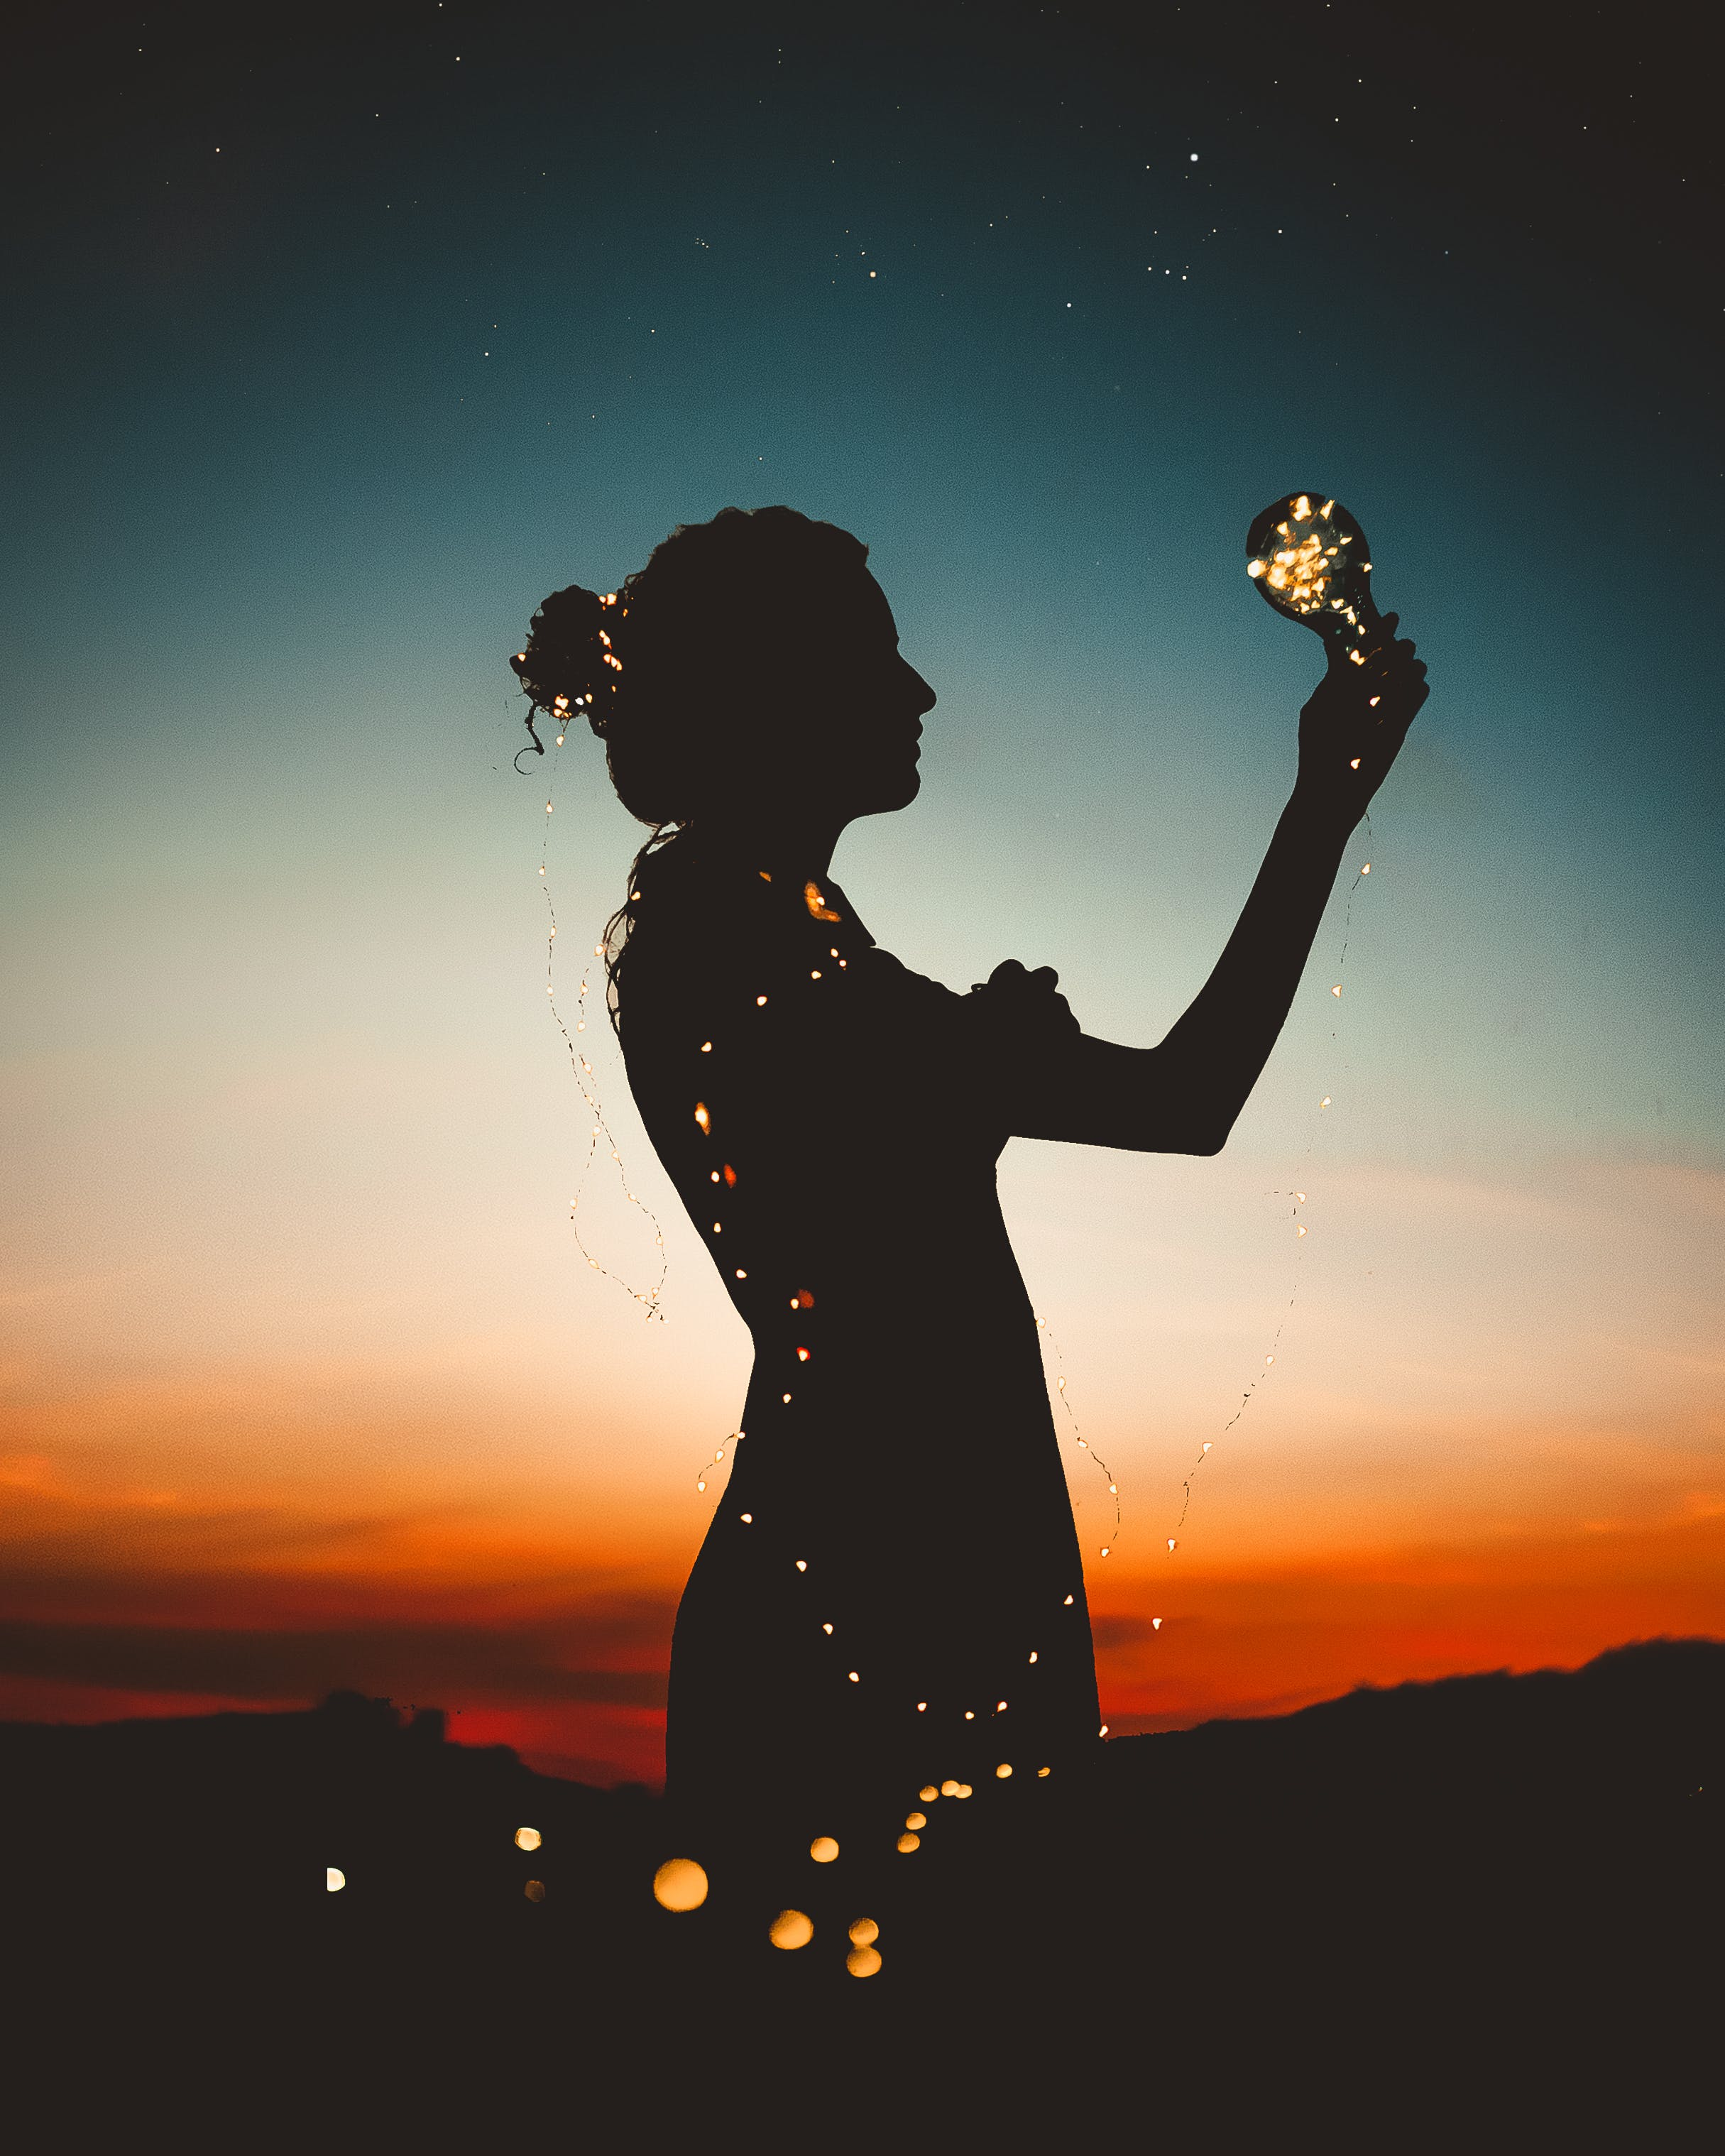 Woman Holding Lit-up Light String Silhouette Photography